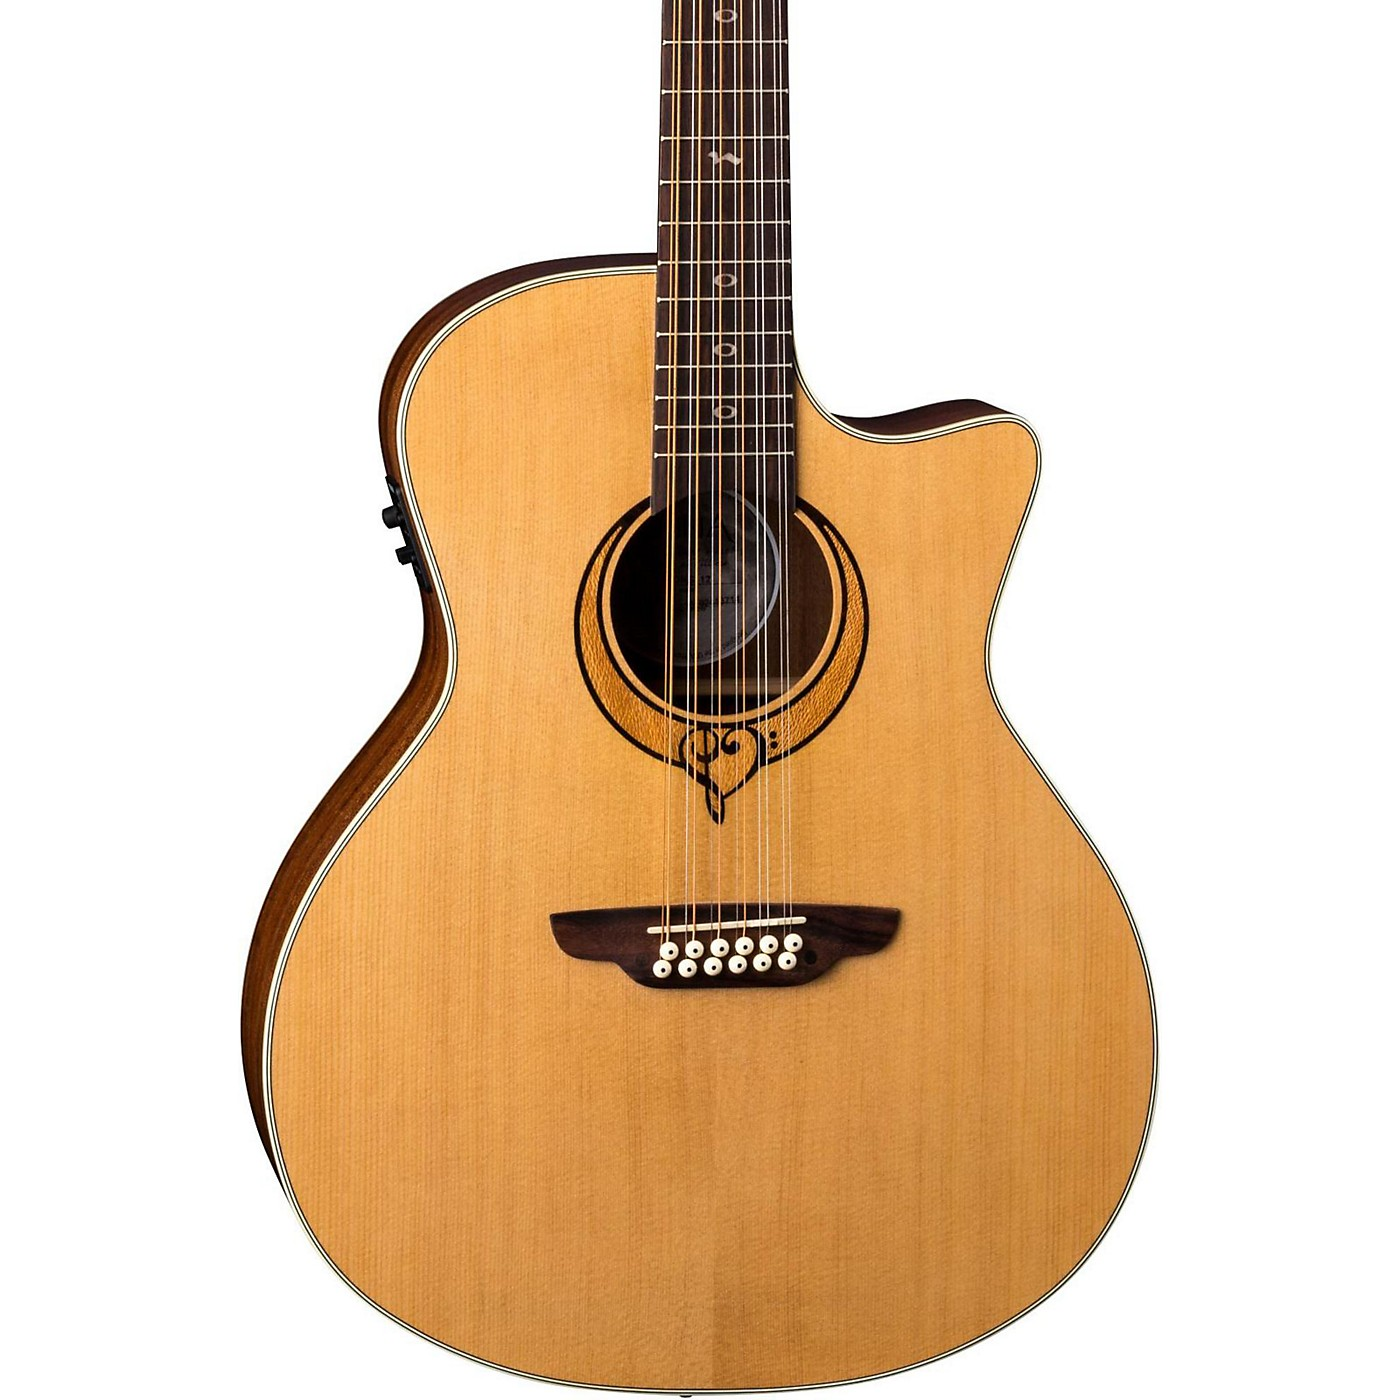 Luna Guitars Heartsong 12 String with USB Acoustic Electric Guitar thumbnail